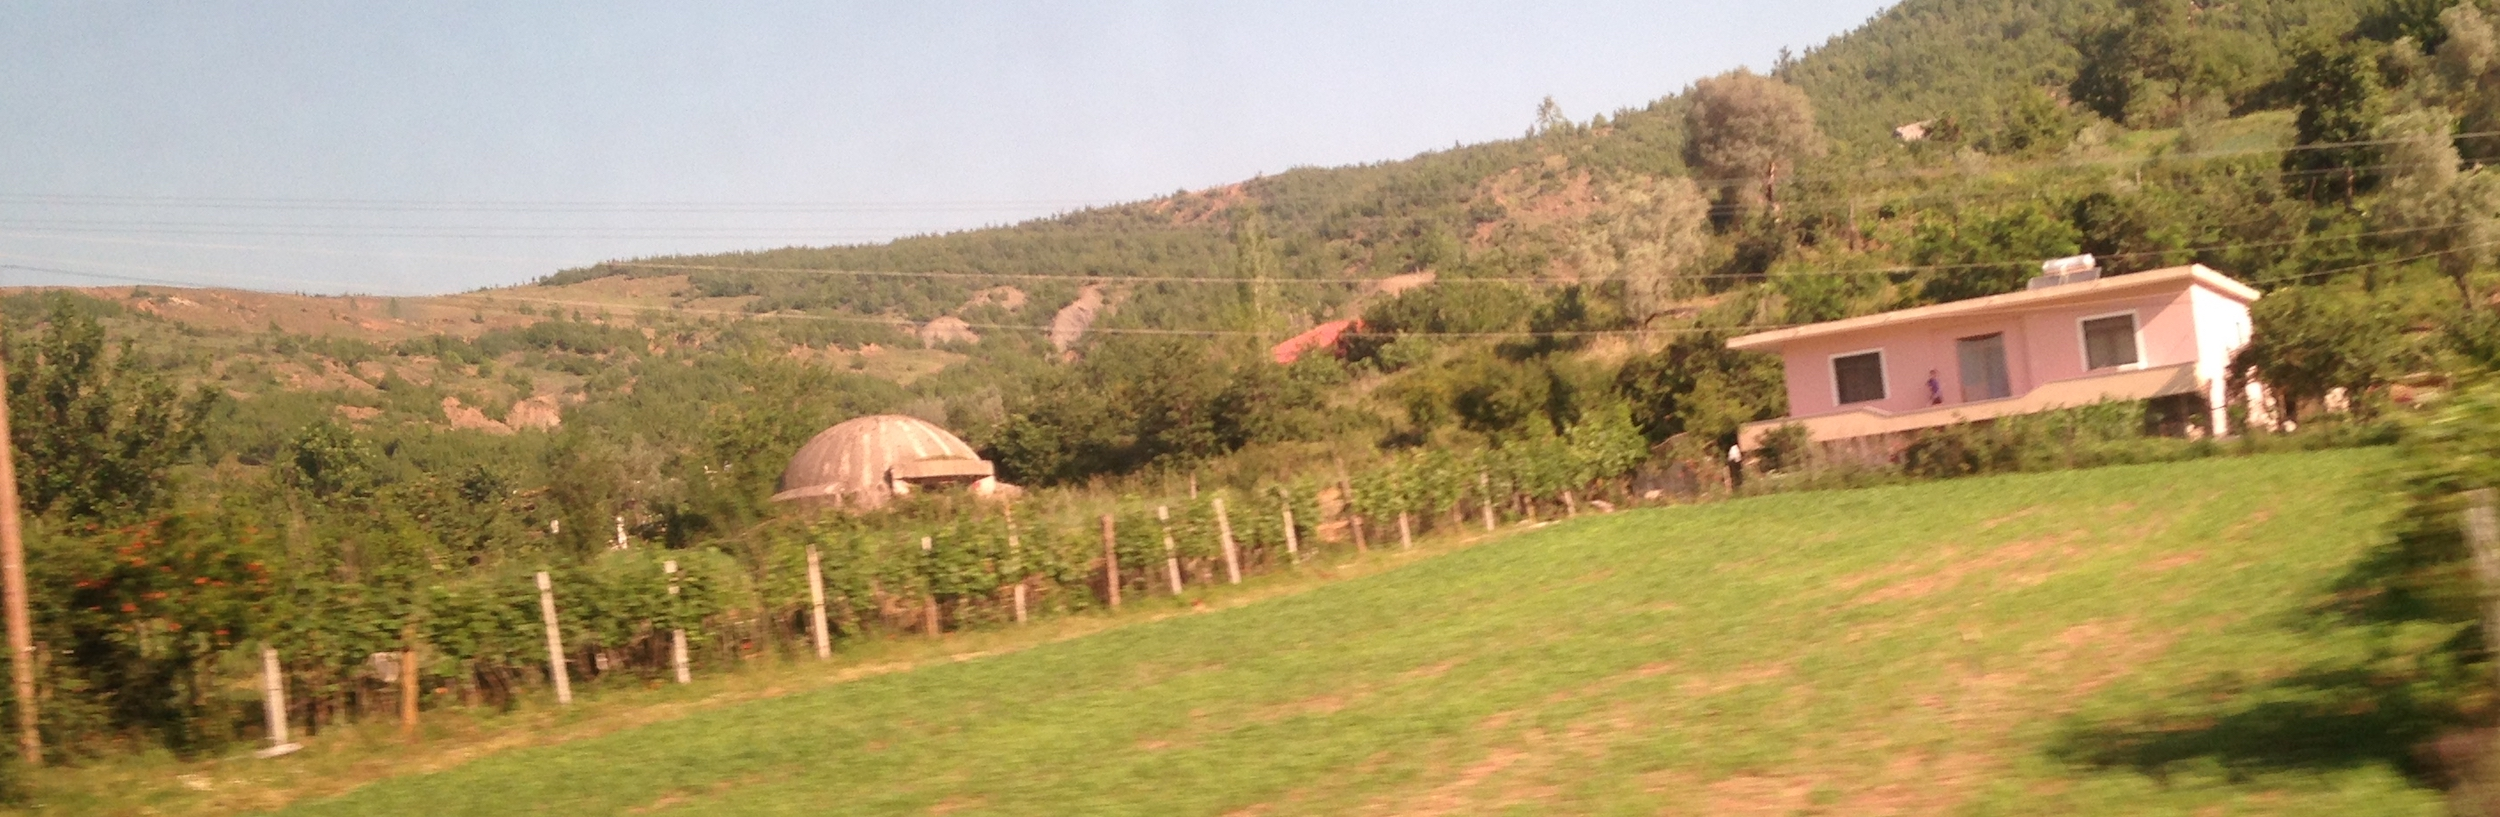 Semi circular bunker (left) in farmyard. Photo taken from the mini bus on the road to Tirana.